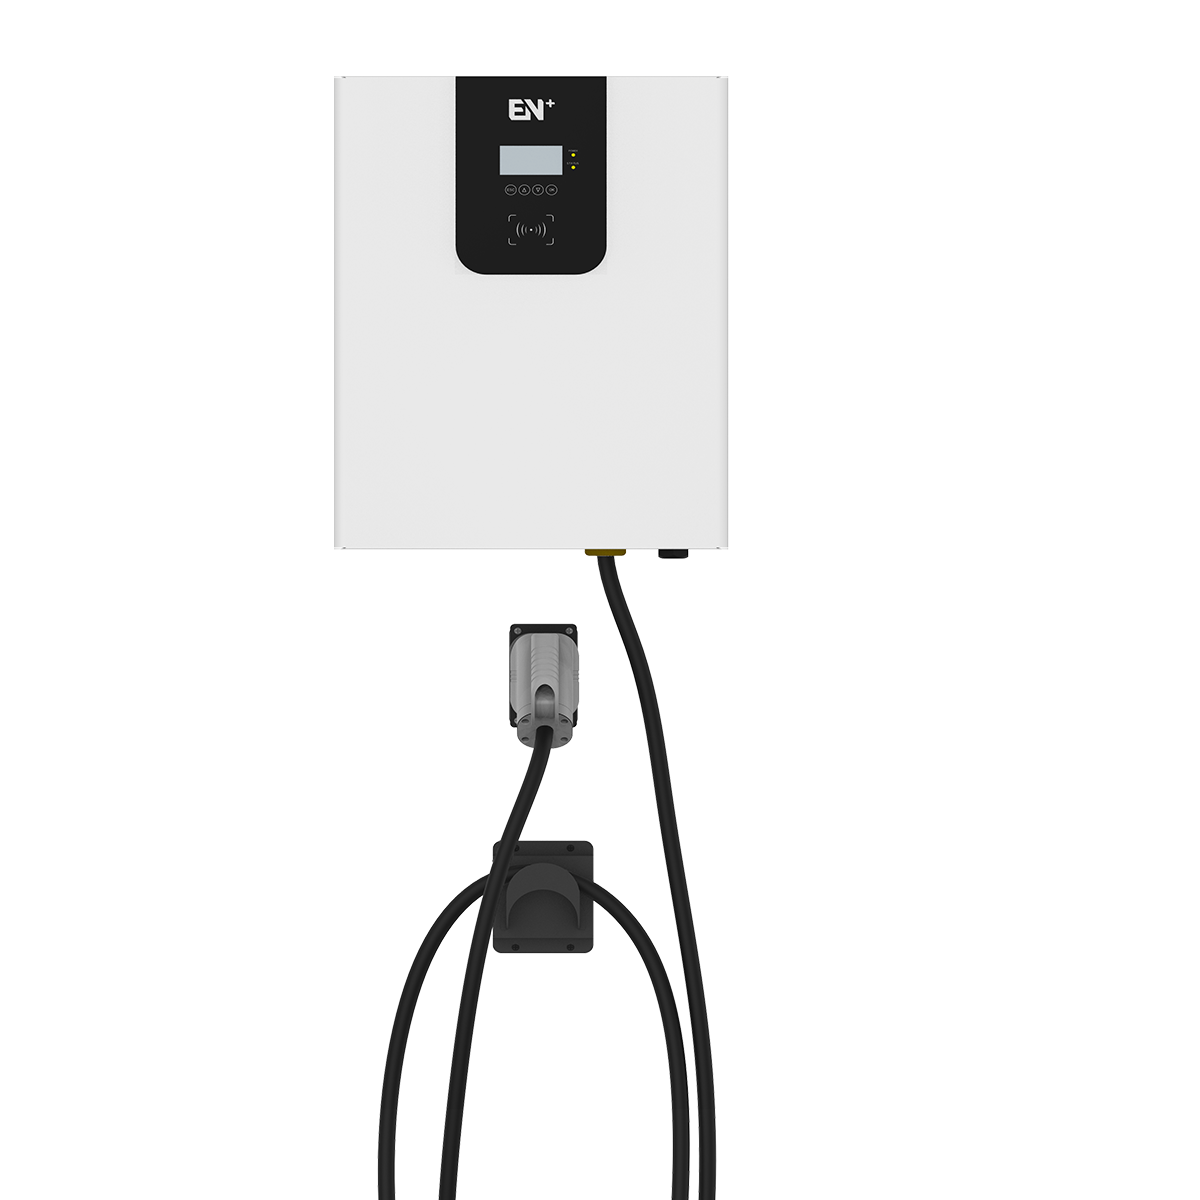 Polaris DC20  Wall-mount 20kW DC Charging Station